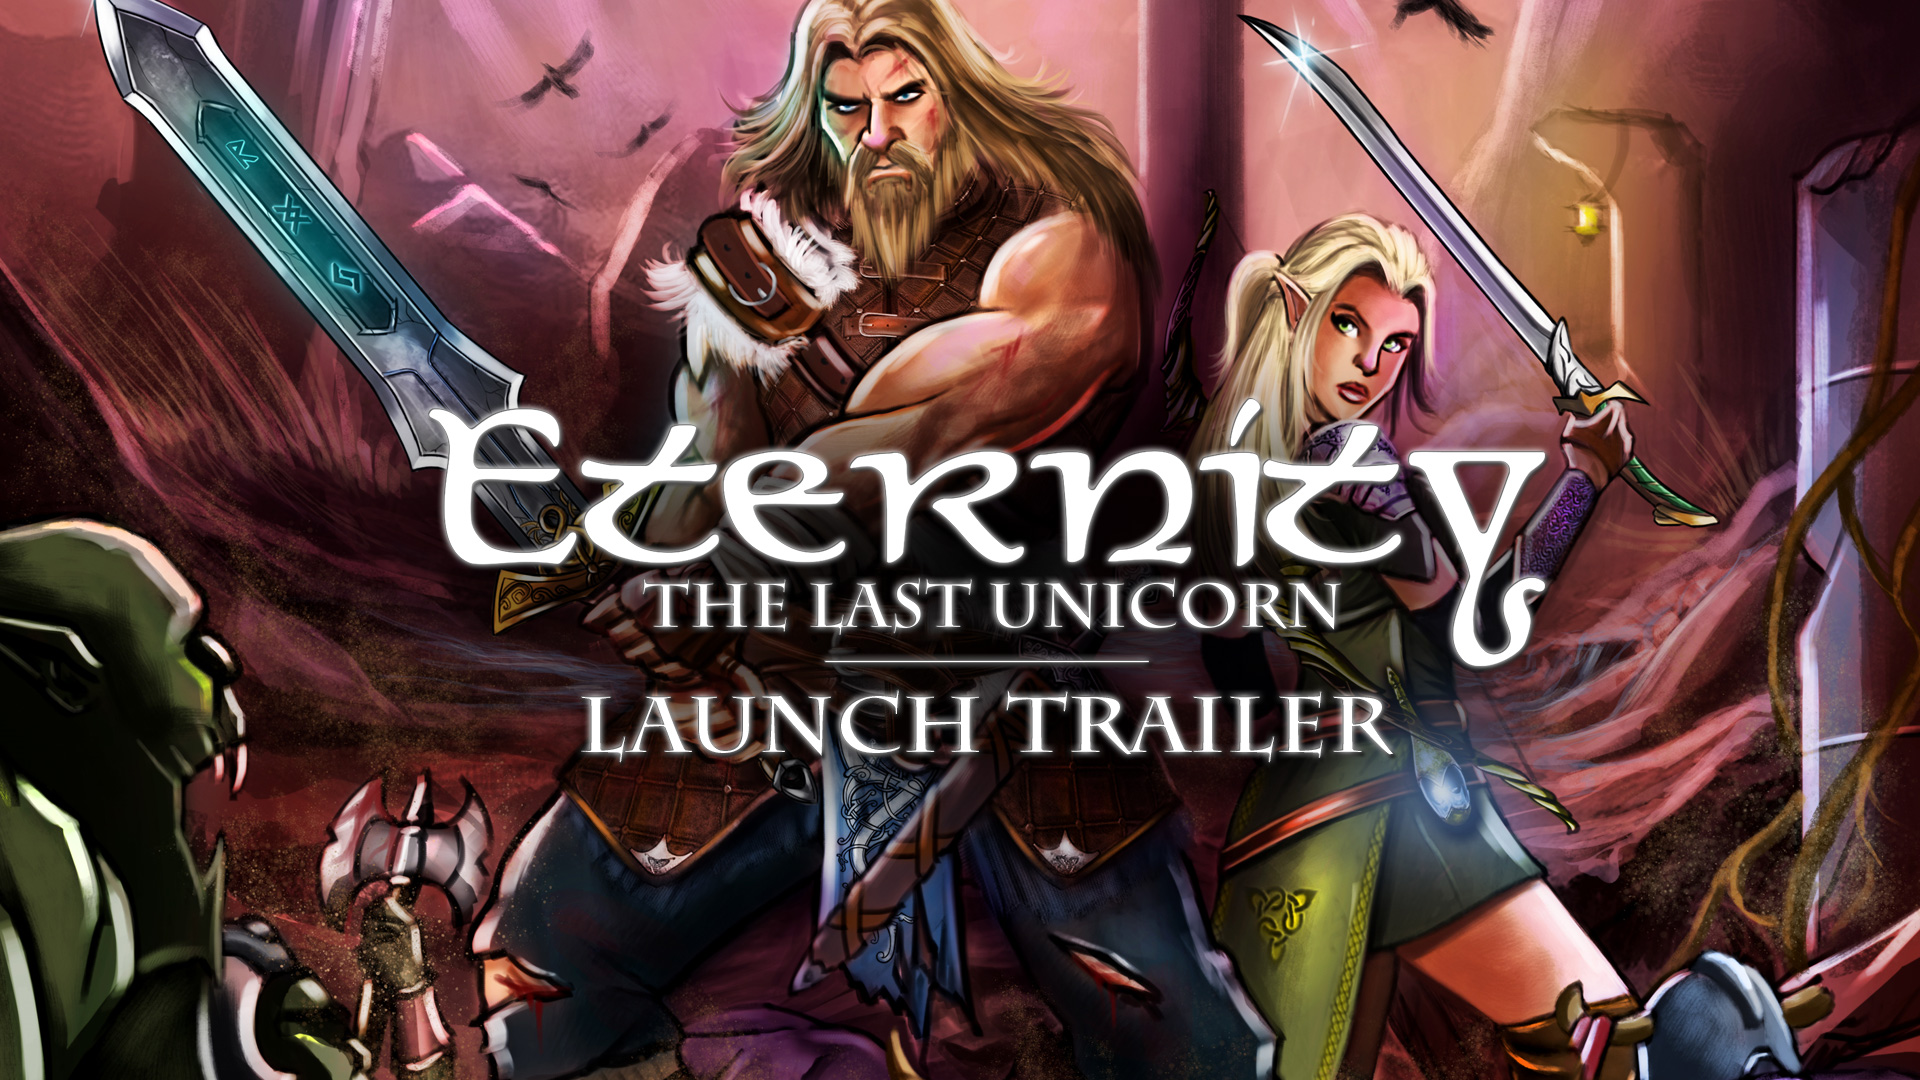 Embrace Your Action RPG Nostalgia - Eternity: The Last Unicorn is Out Now on PC and PS4